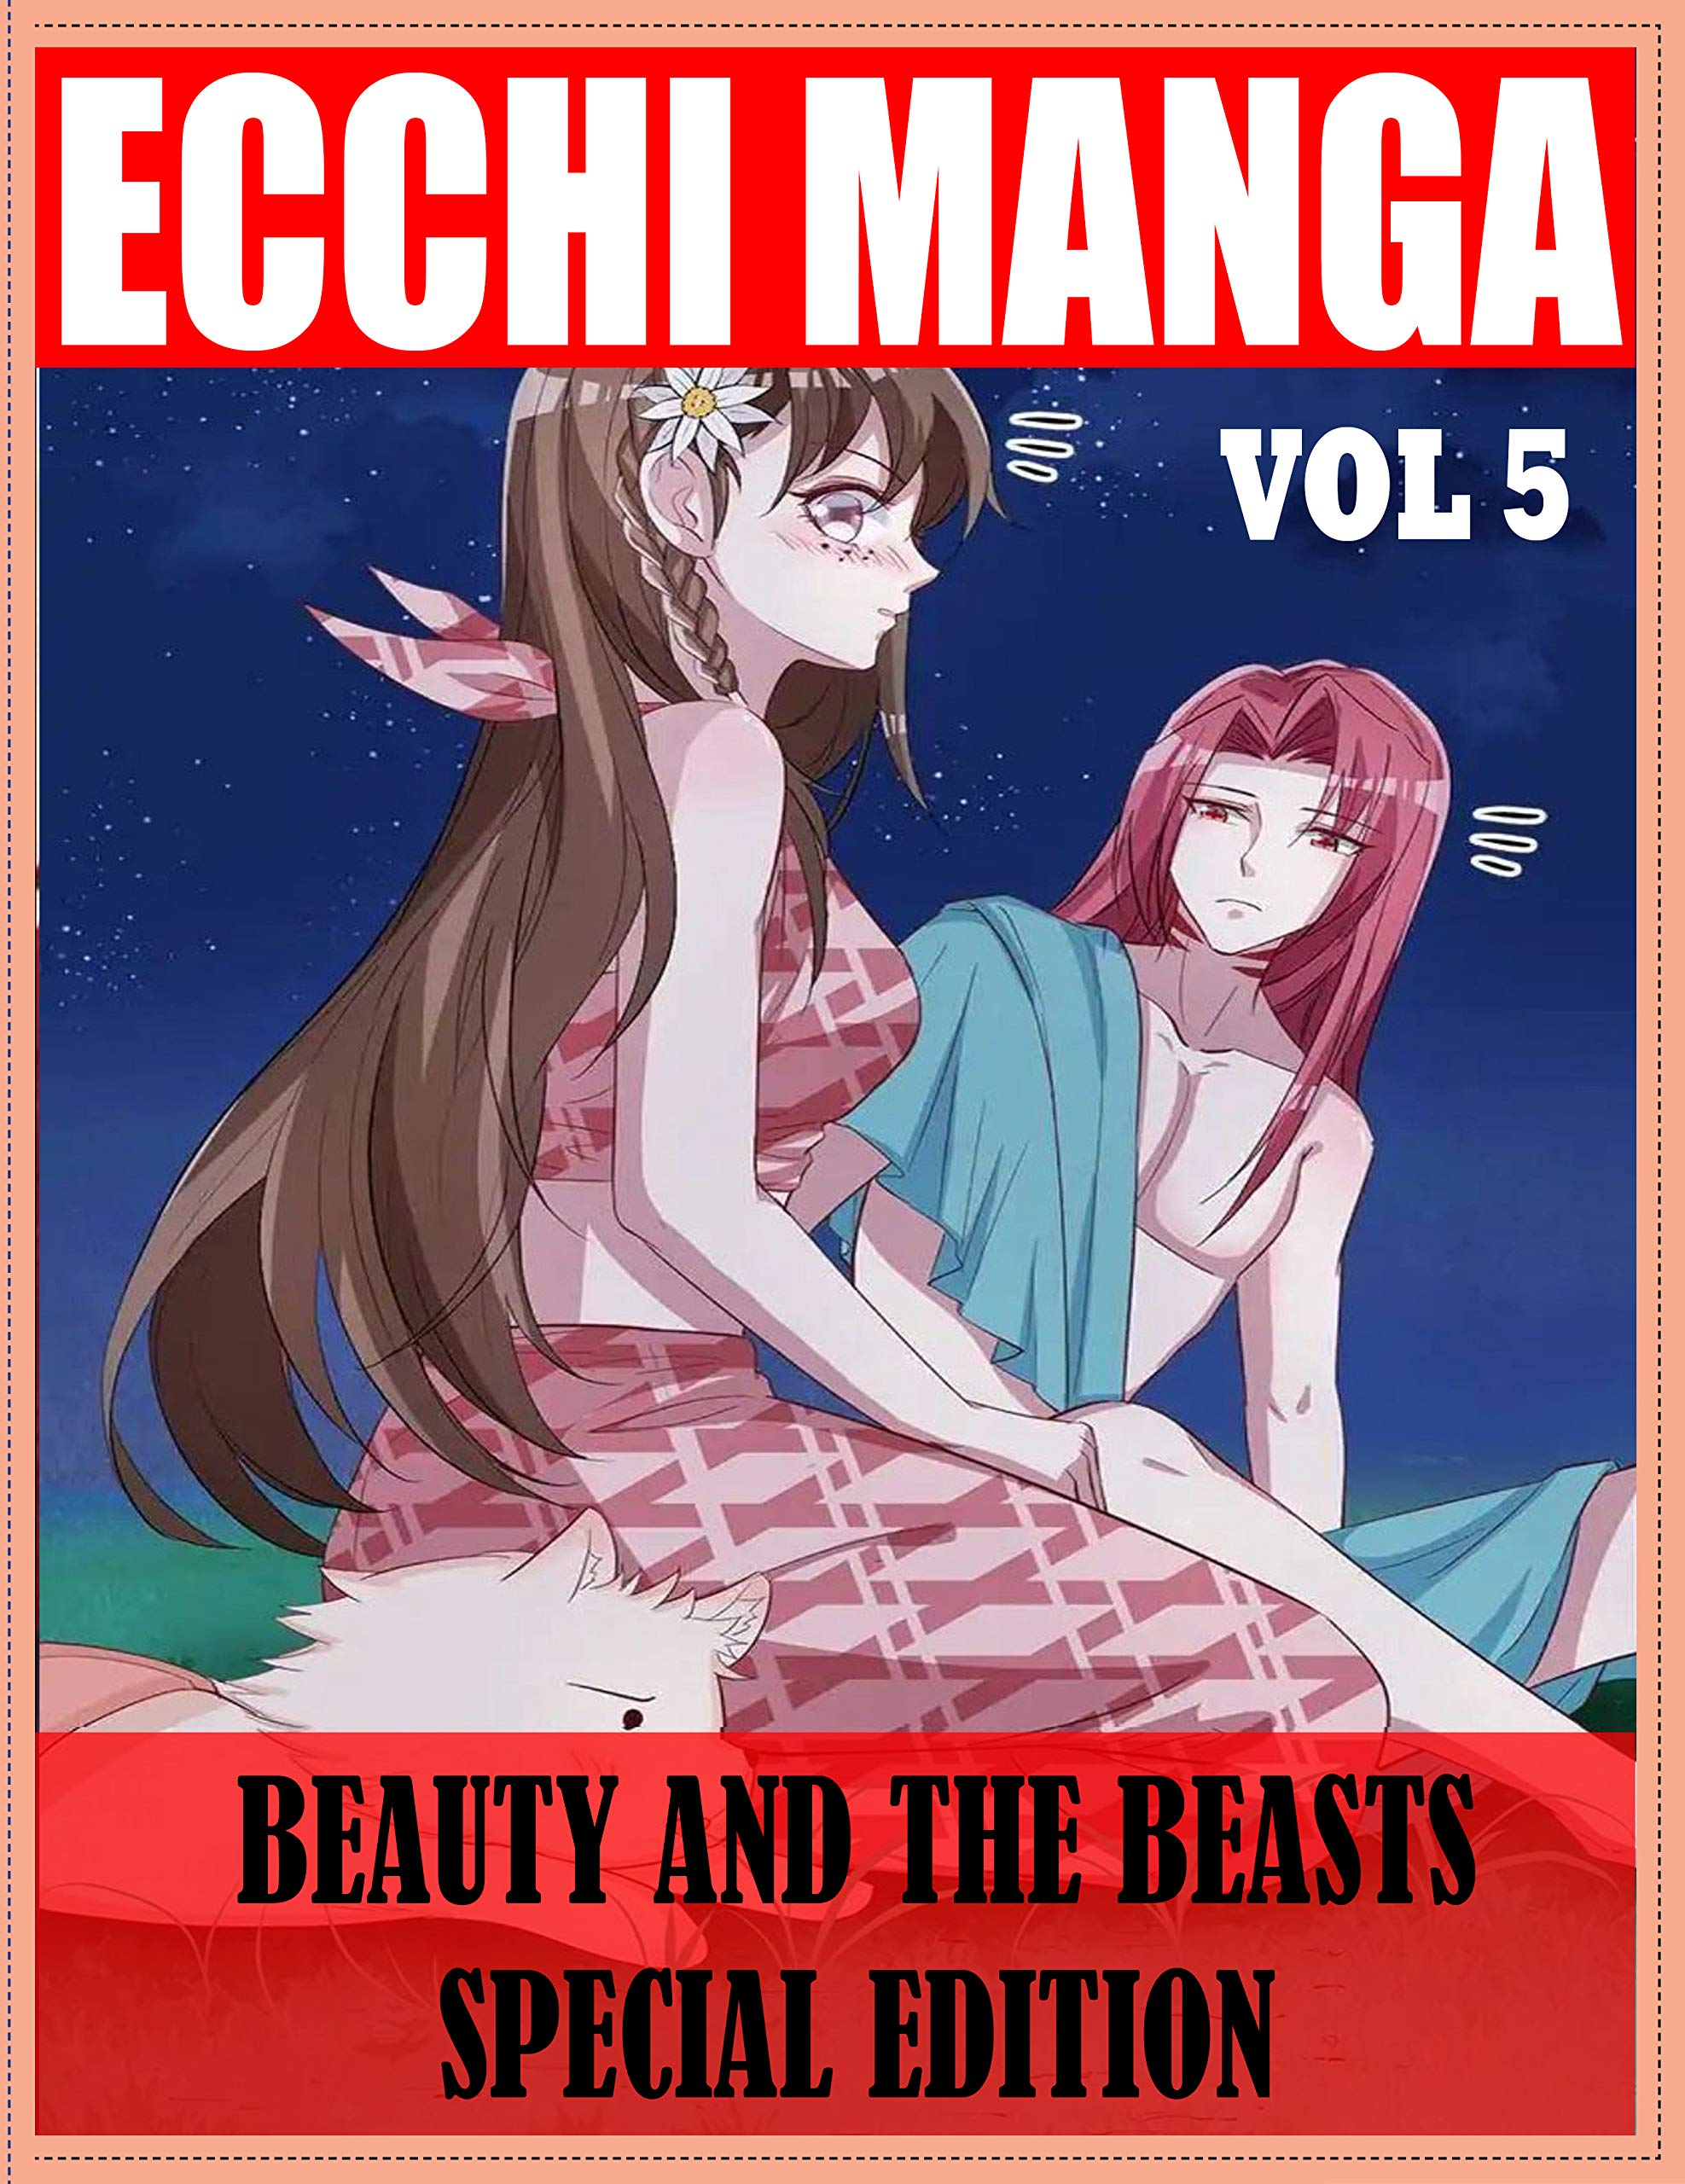 Best of Ecchi Manga Beauty And The Beasts Special Edition: Ecchi Shounen Beauty And The Beasts Limited Edition Vol 5